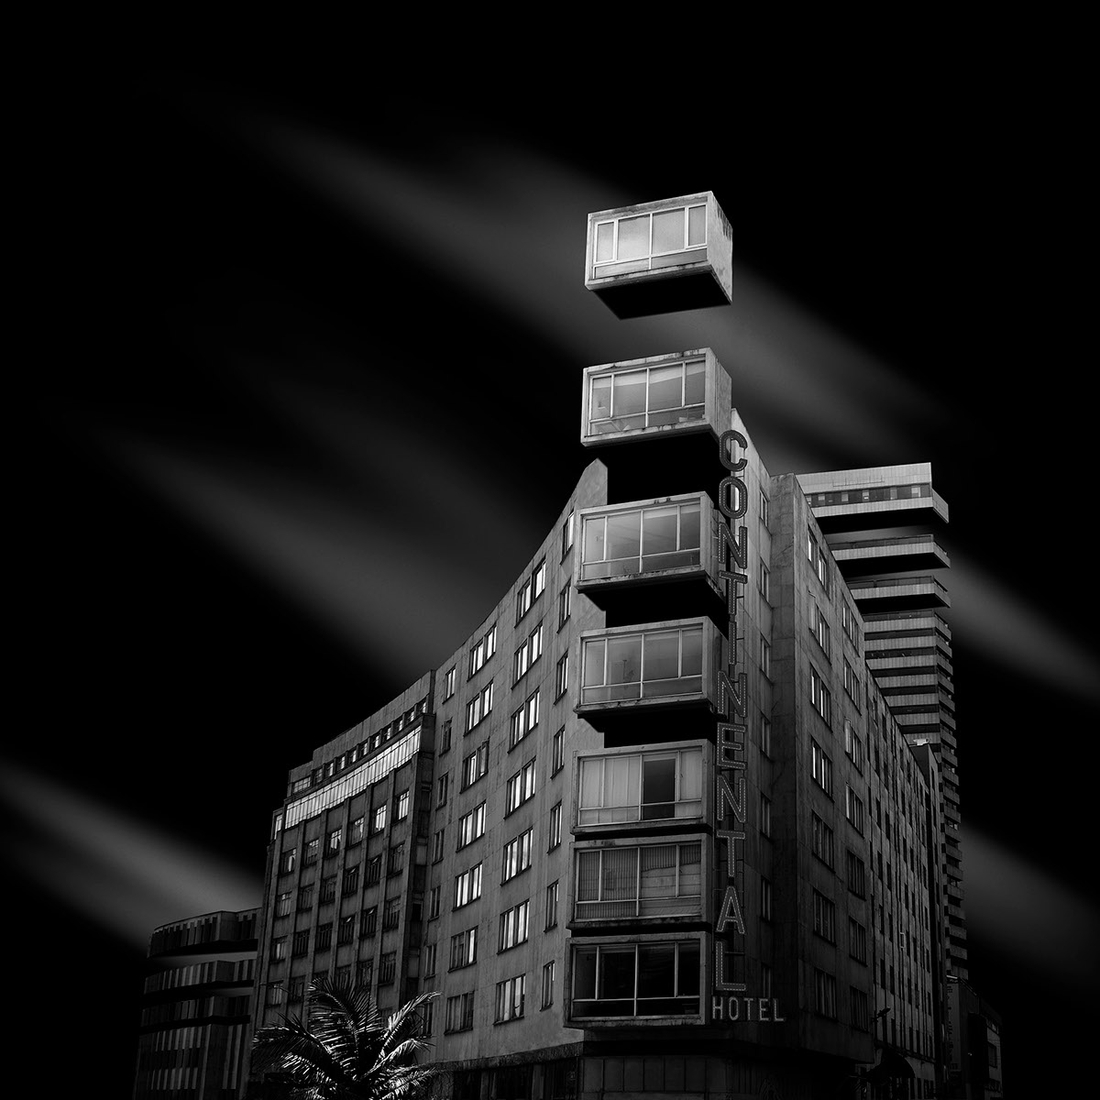 08-Daniel-Garay-Arango-Black-and-White-Surreal-Photographs-Architectural-Deconstruction-www-designstack-co